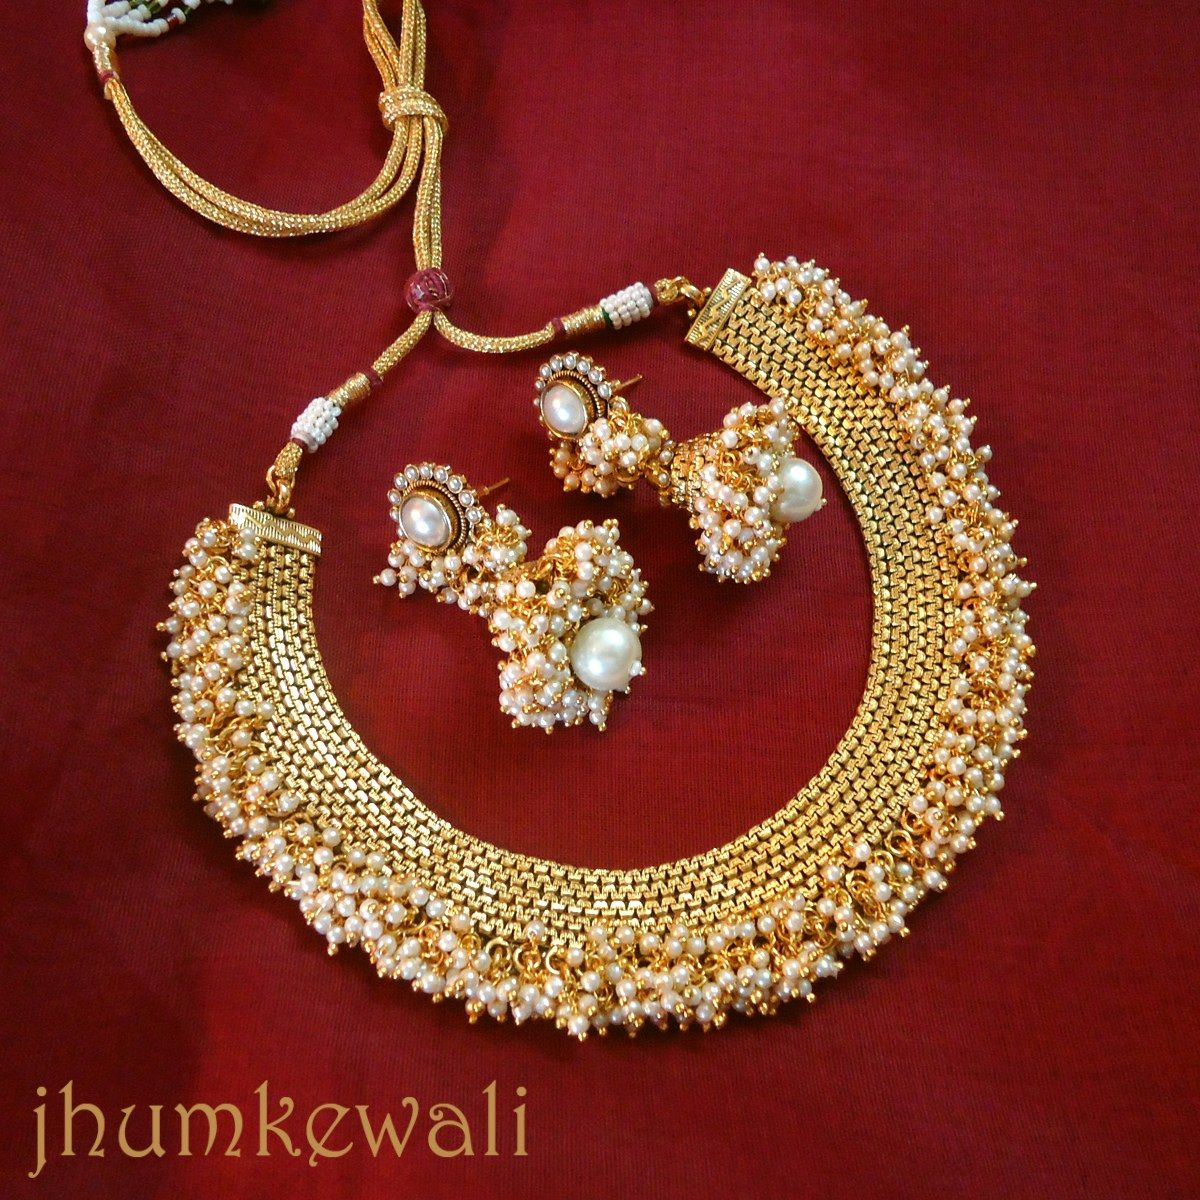 Indian Gold Jewellery Necklace Sets Google Search: Indian Pearl Necklace - Google Search